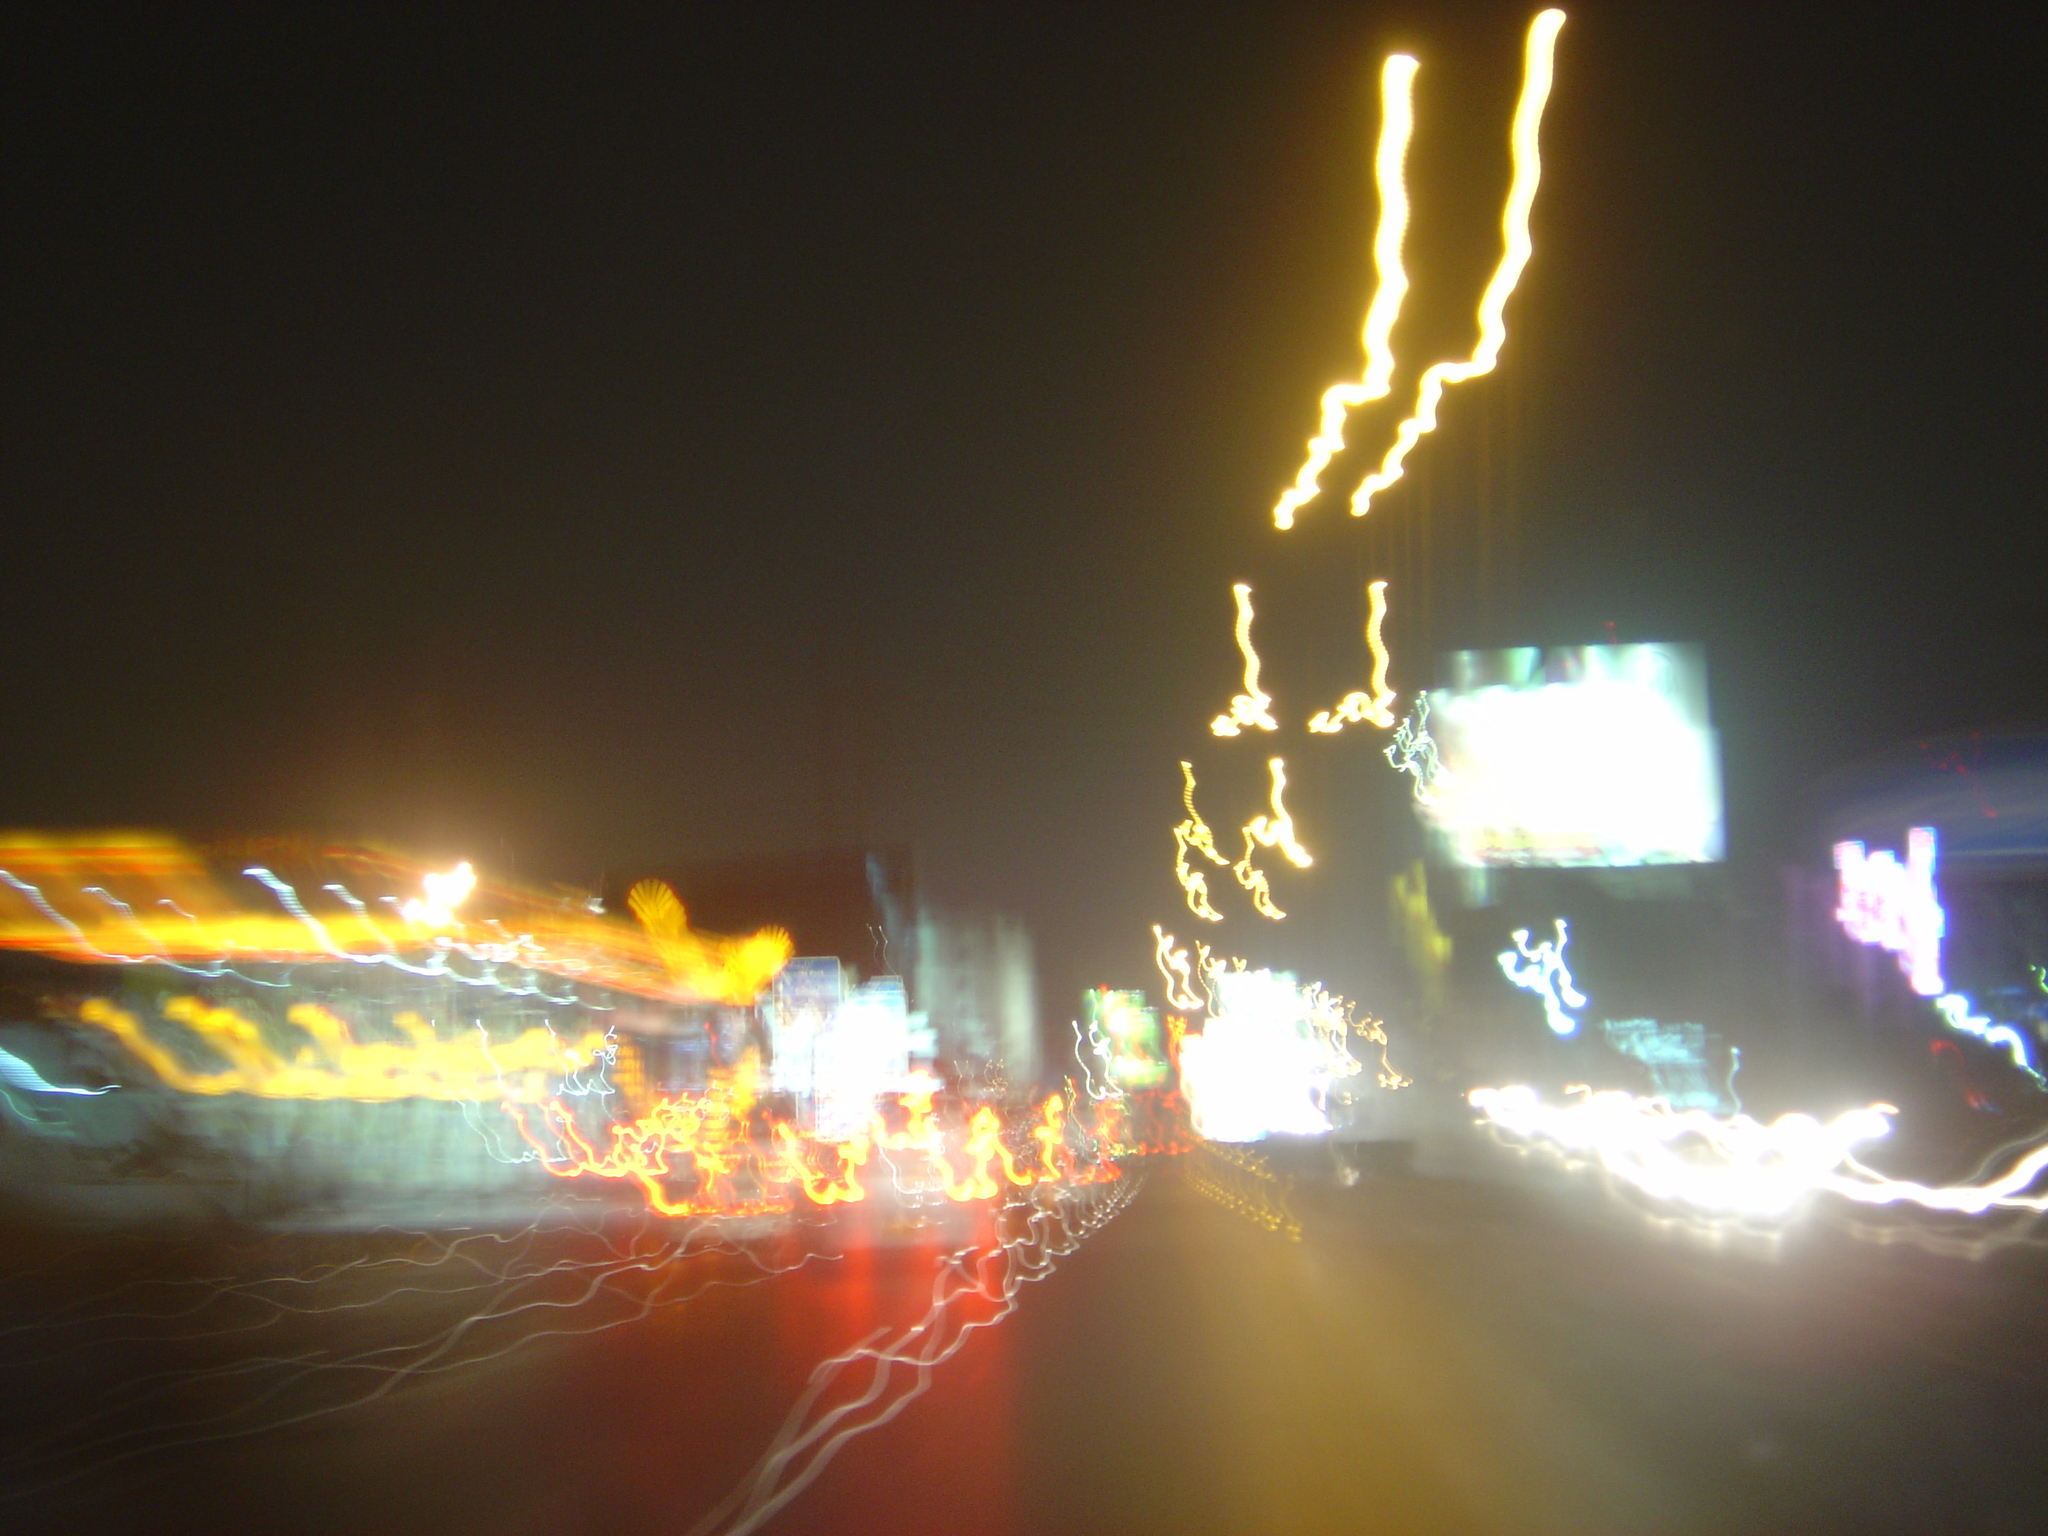 Karachi night in a blur